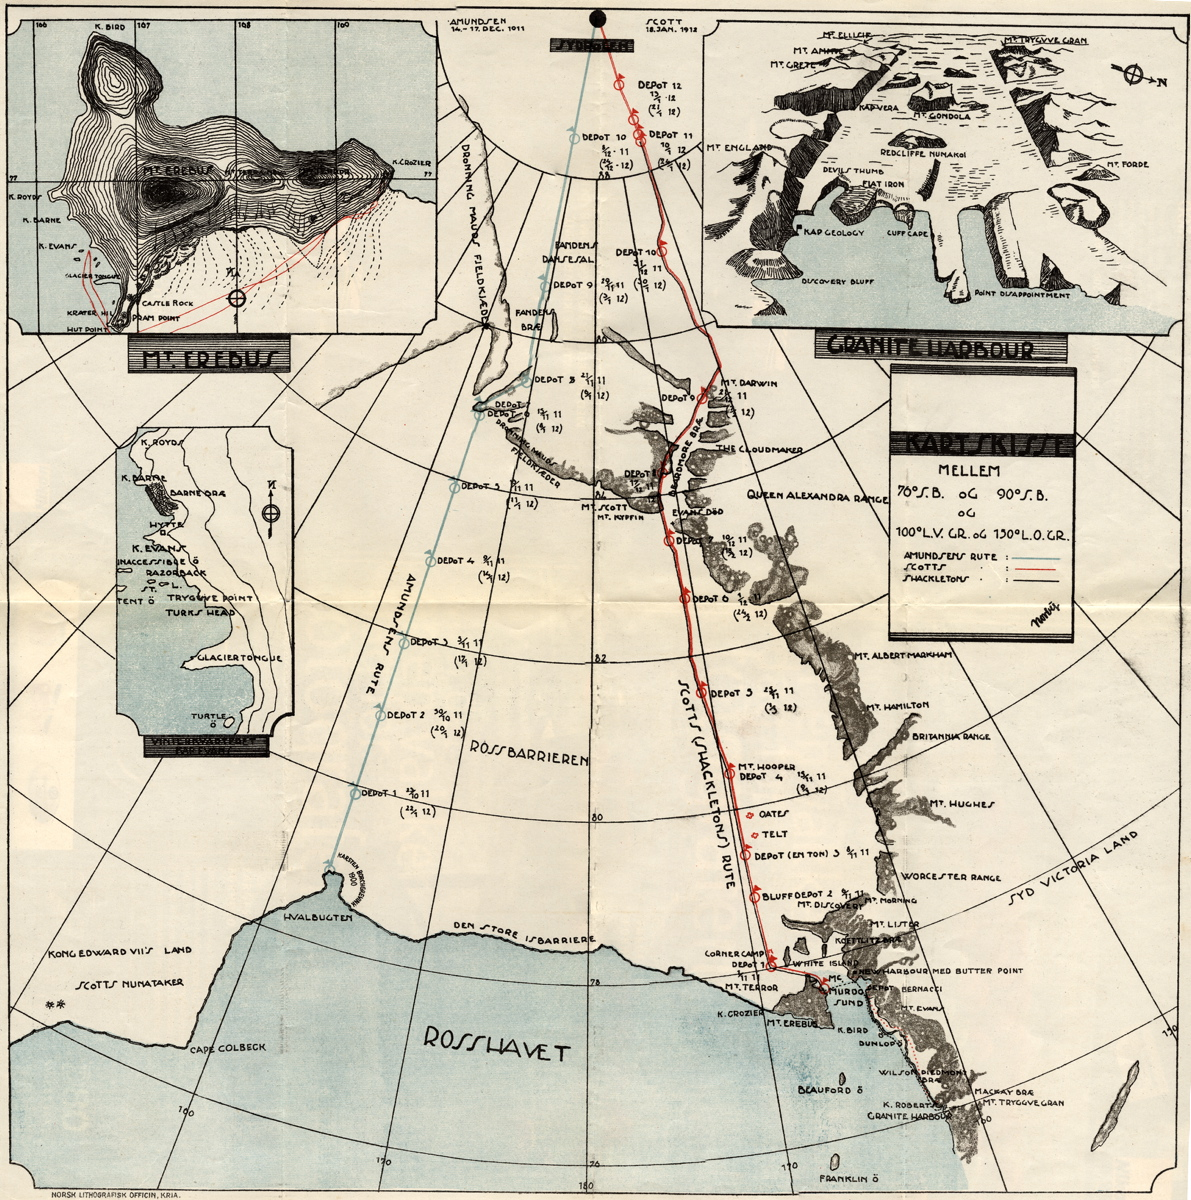 roald amundsen journey timeline Later to norwegian explorer roald amundsen  station that played a pivotal role  in his journey of endurance  expedition and the timeline activity sheets.